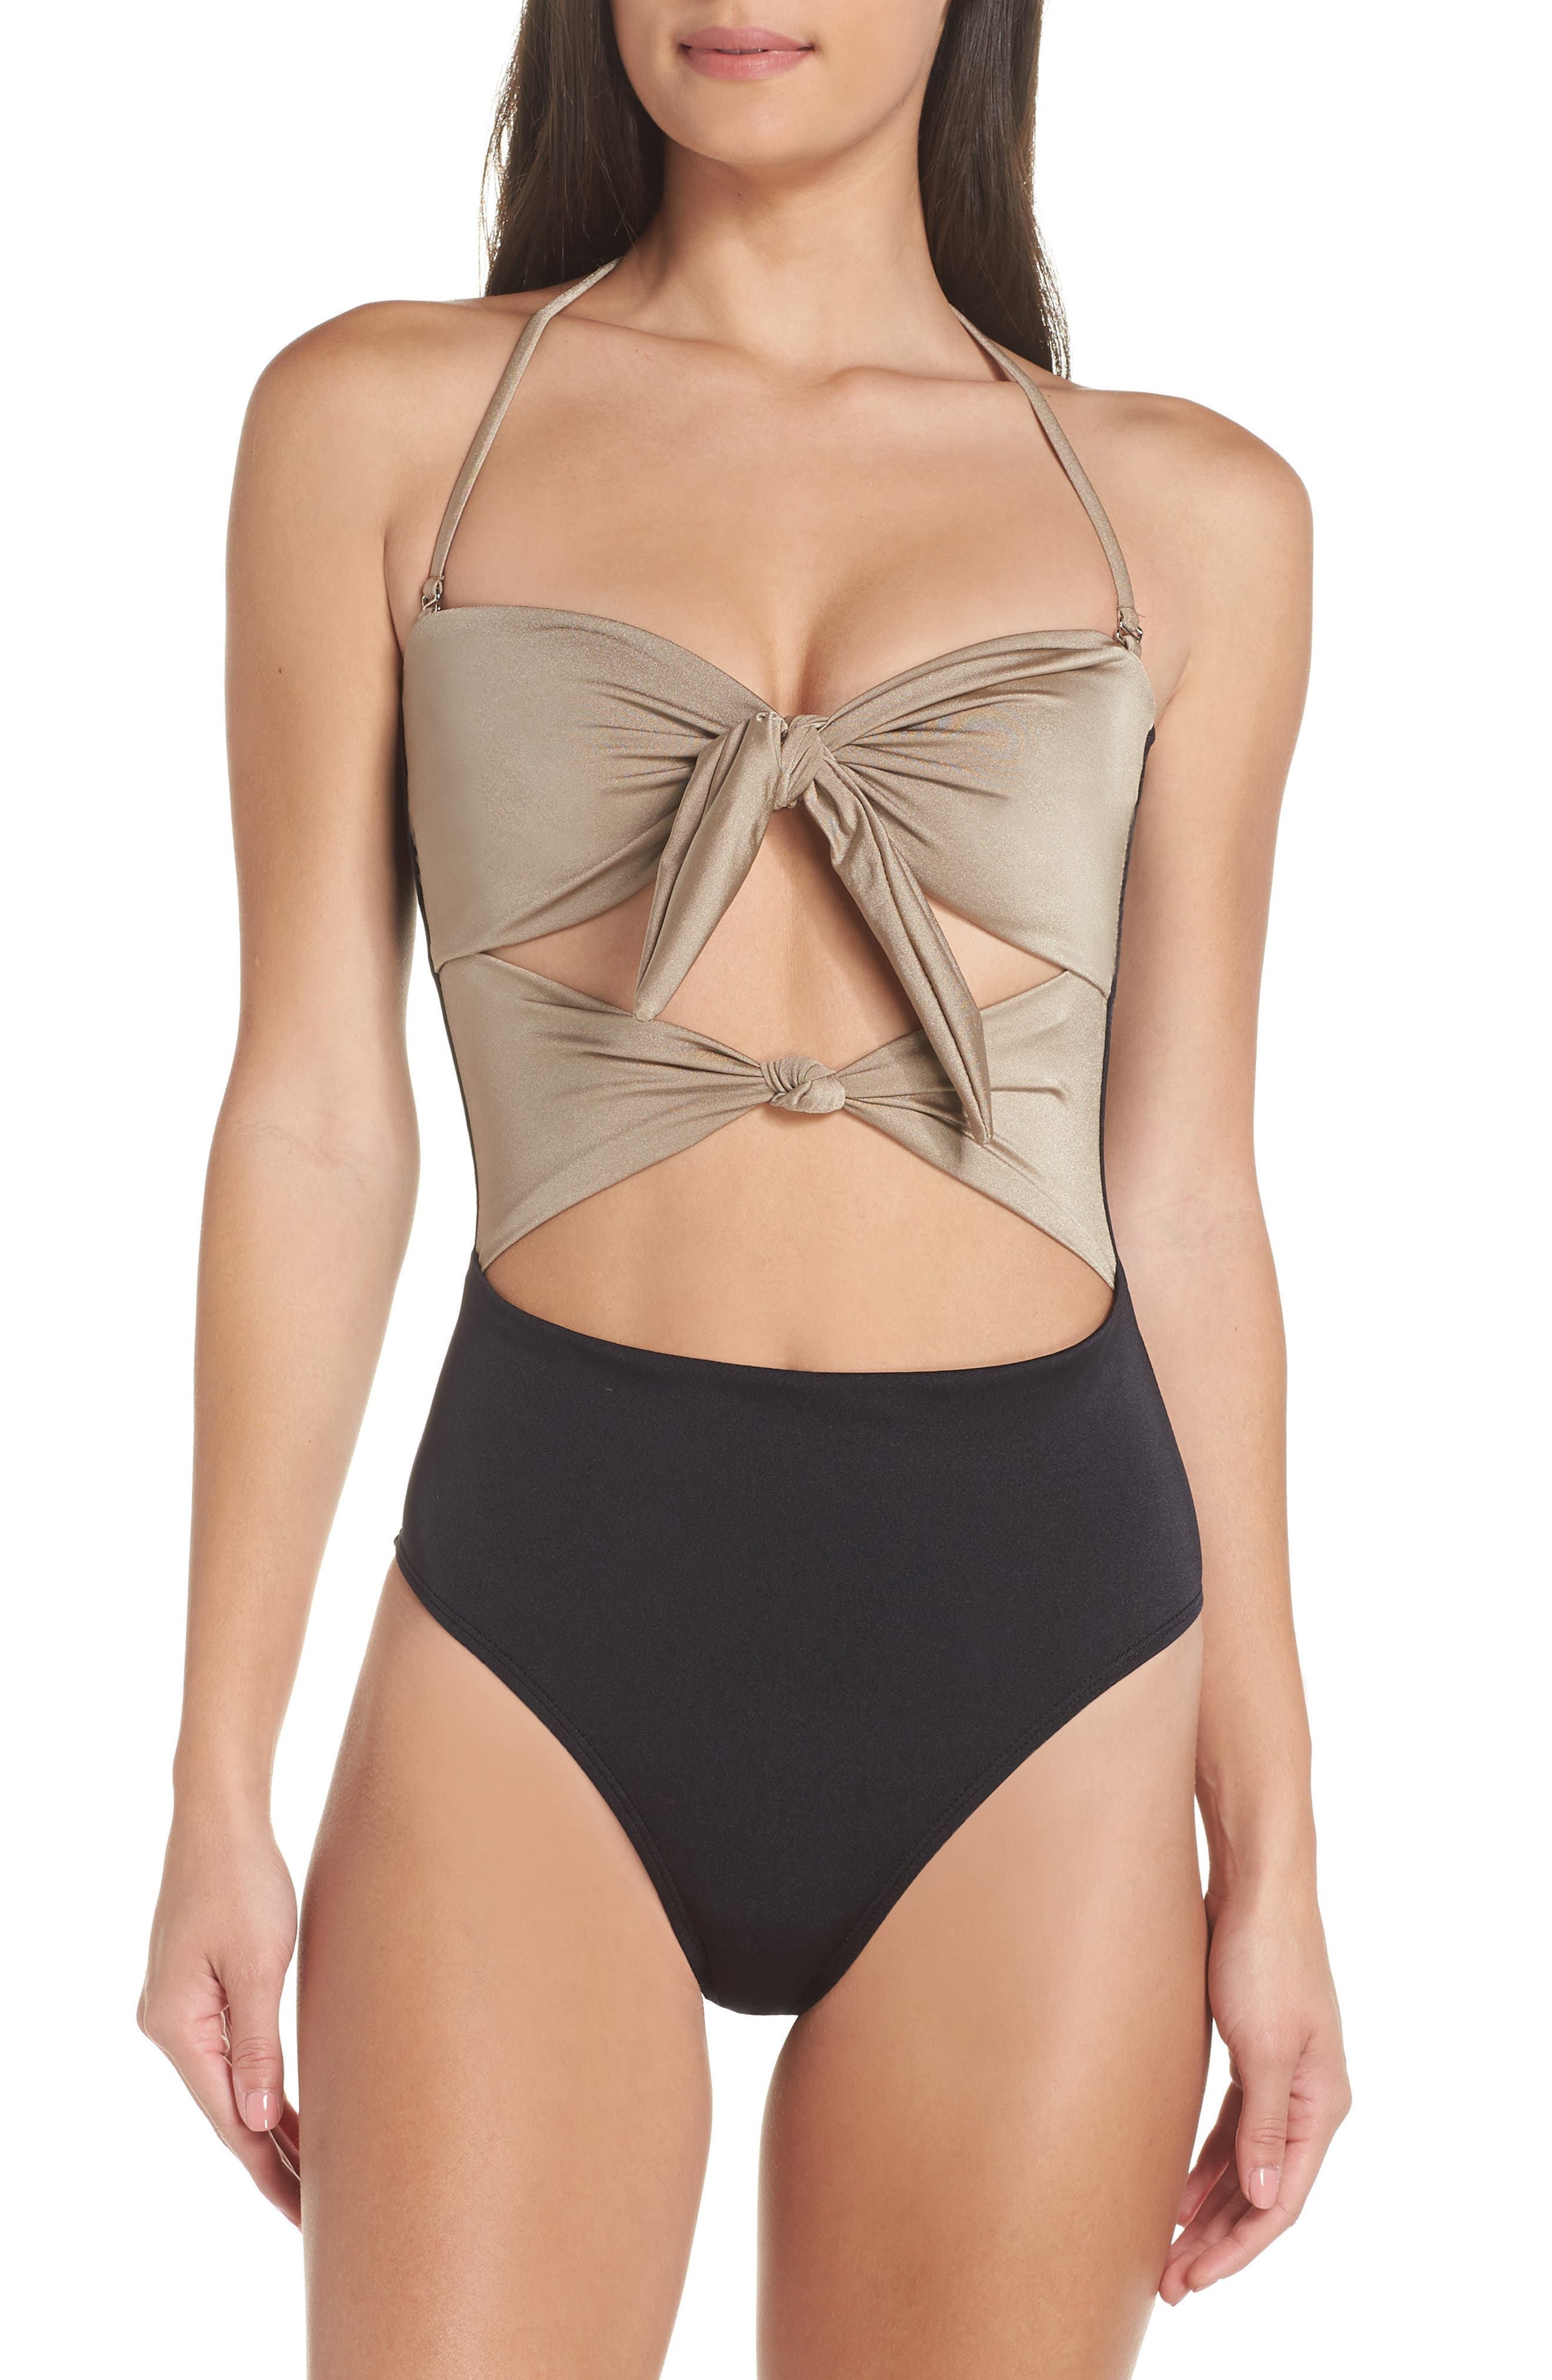 Glam Nights One-Piece Swimsuit,                             Alternate thumbnail 2, color,                             TAN MINK/ BLACK